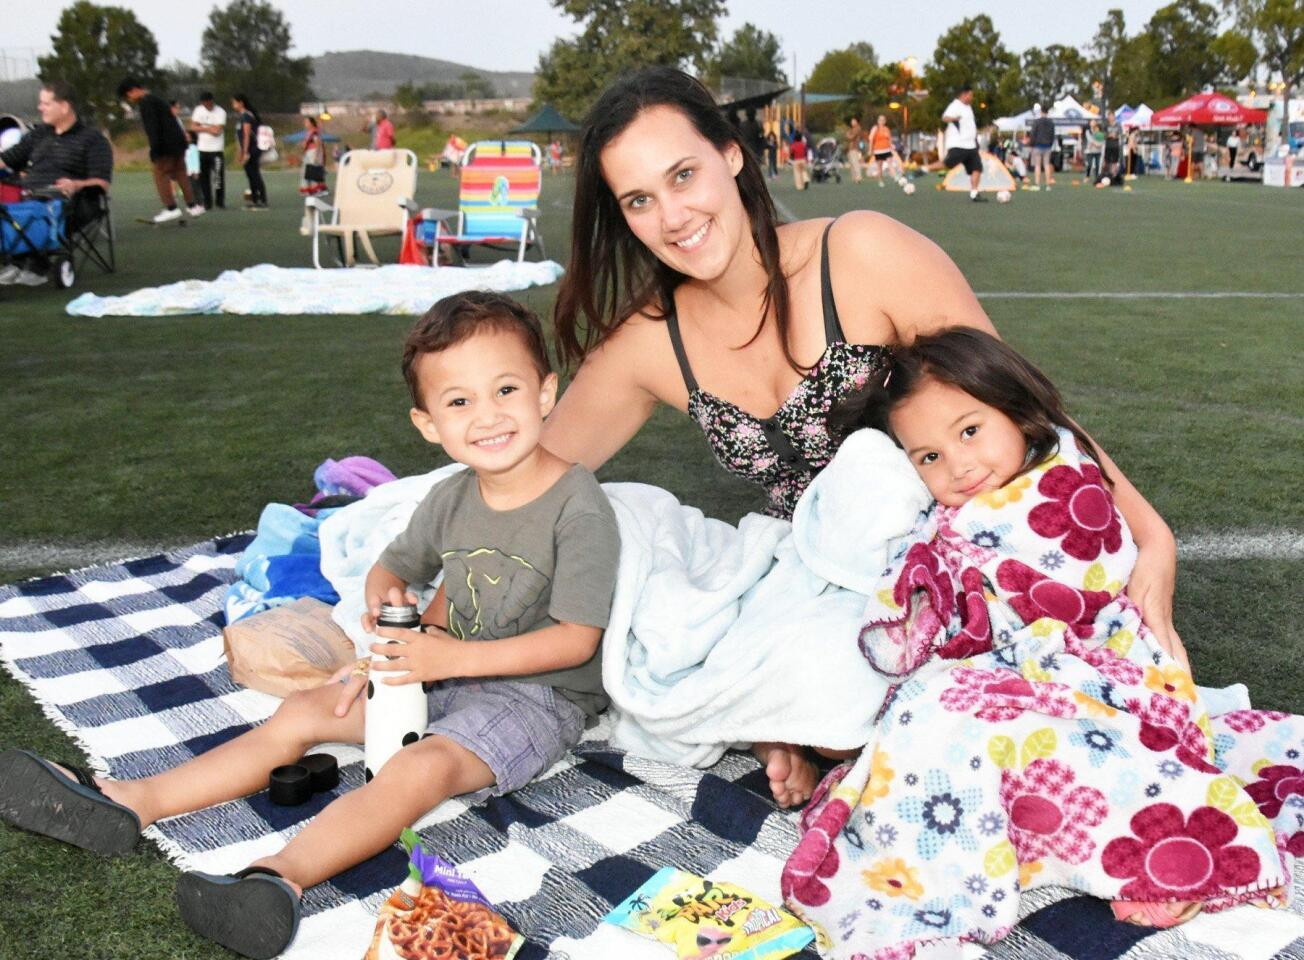 4S Ranch Summer Movies in the Park - 7/13/2018